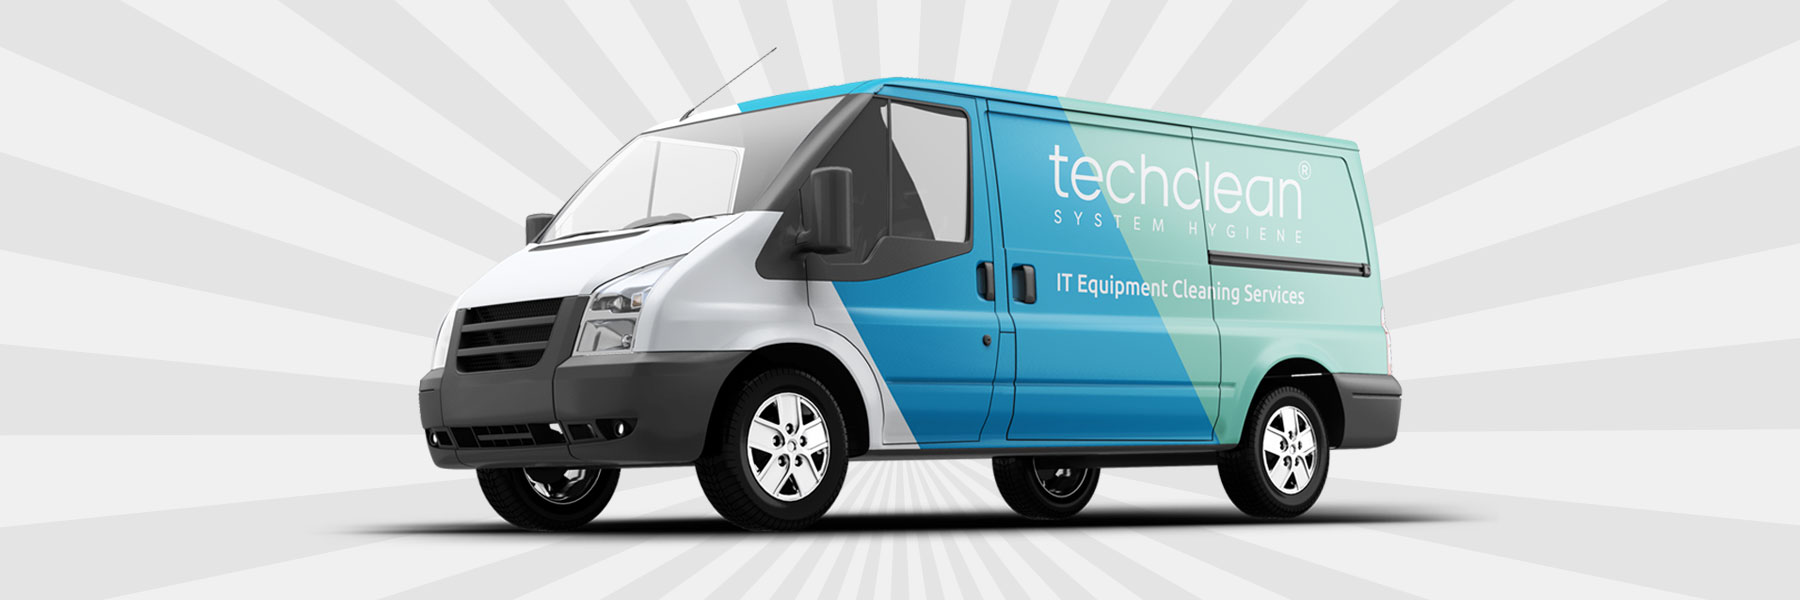 Techclean Mobile Service